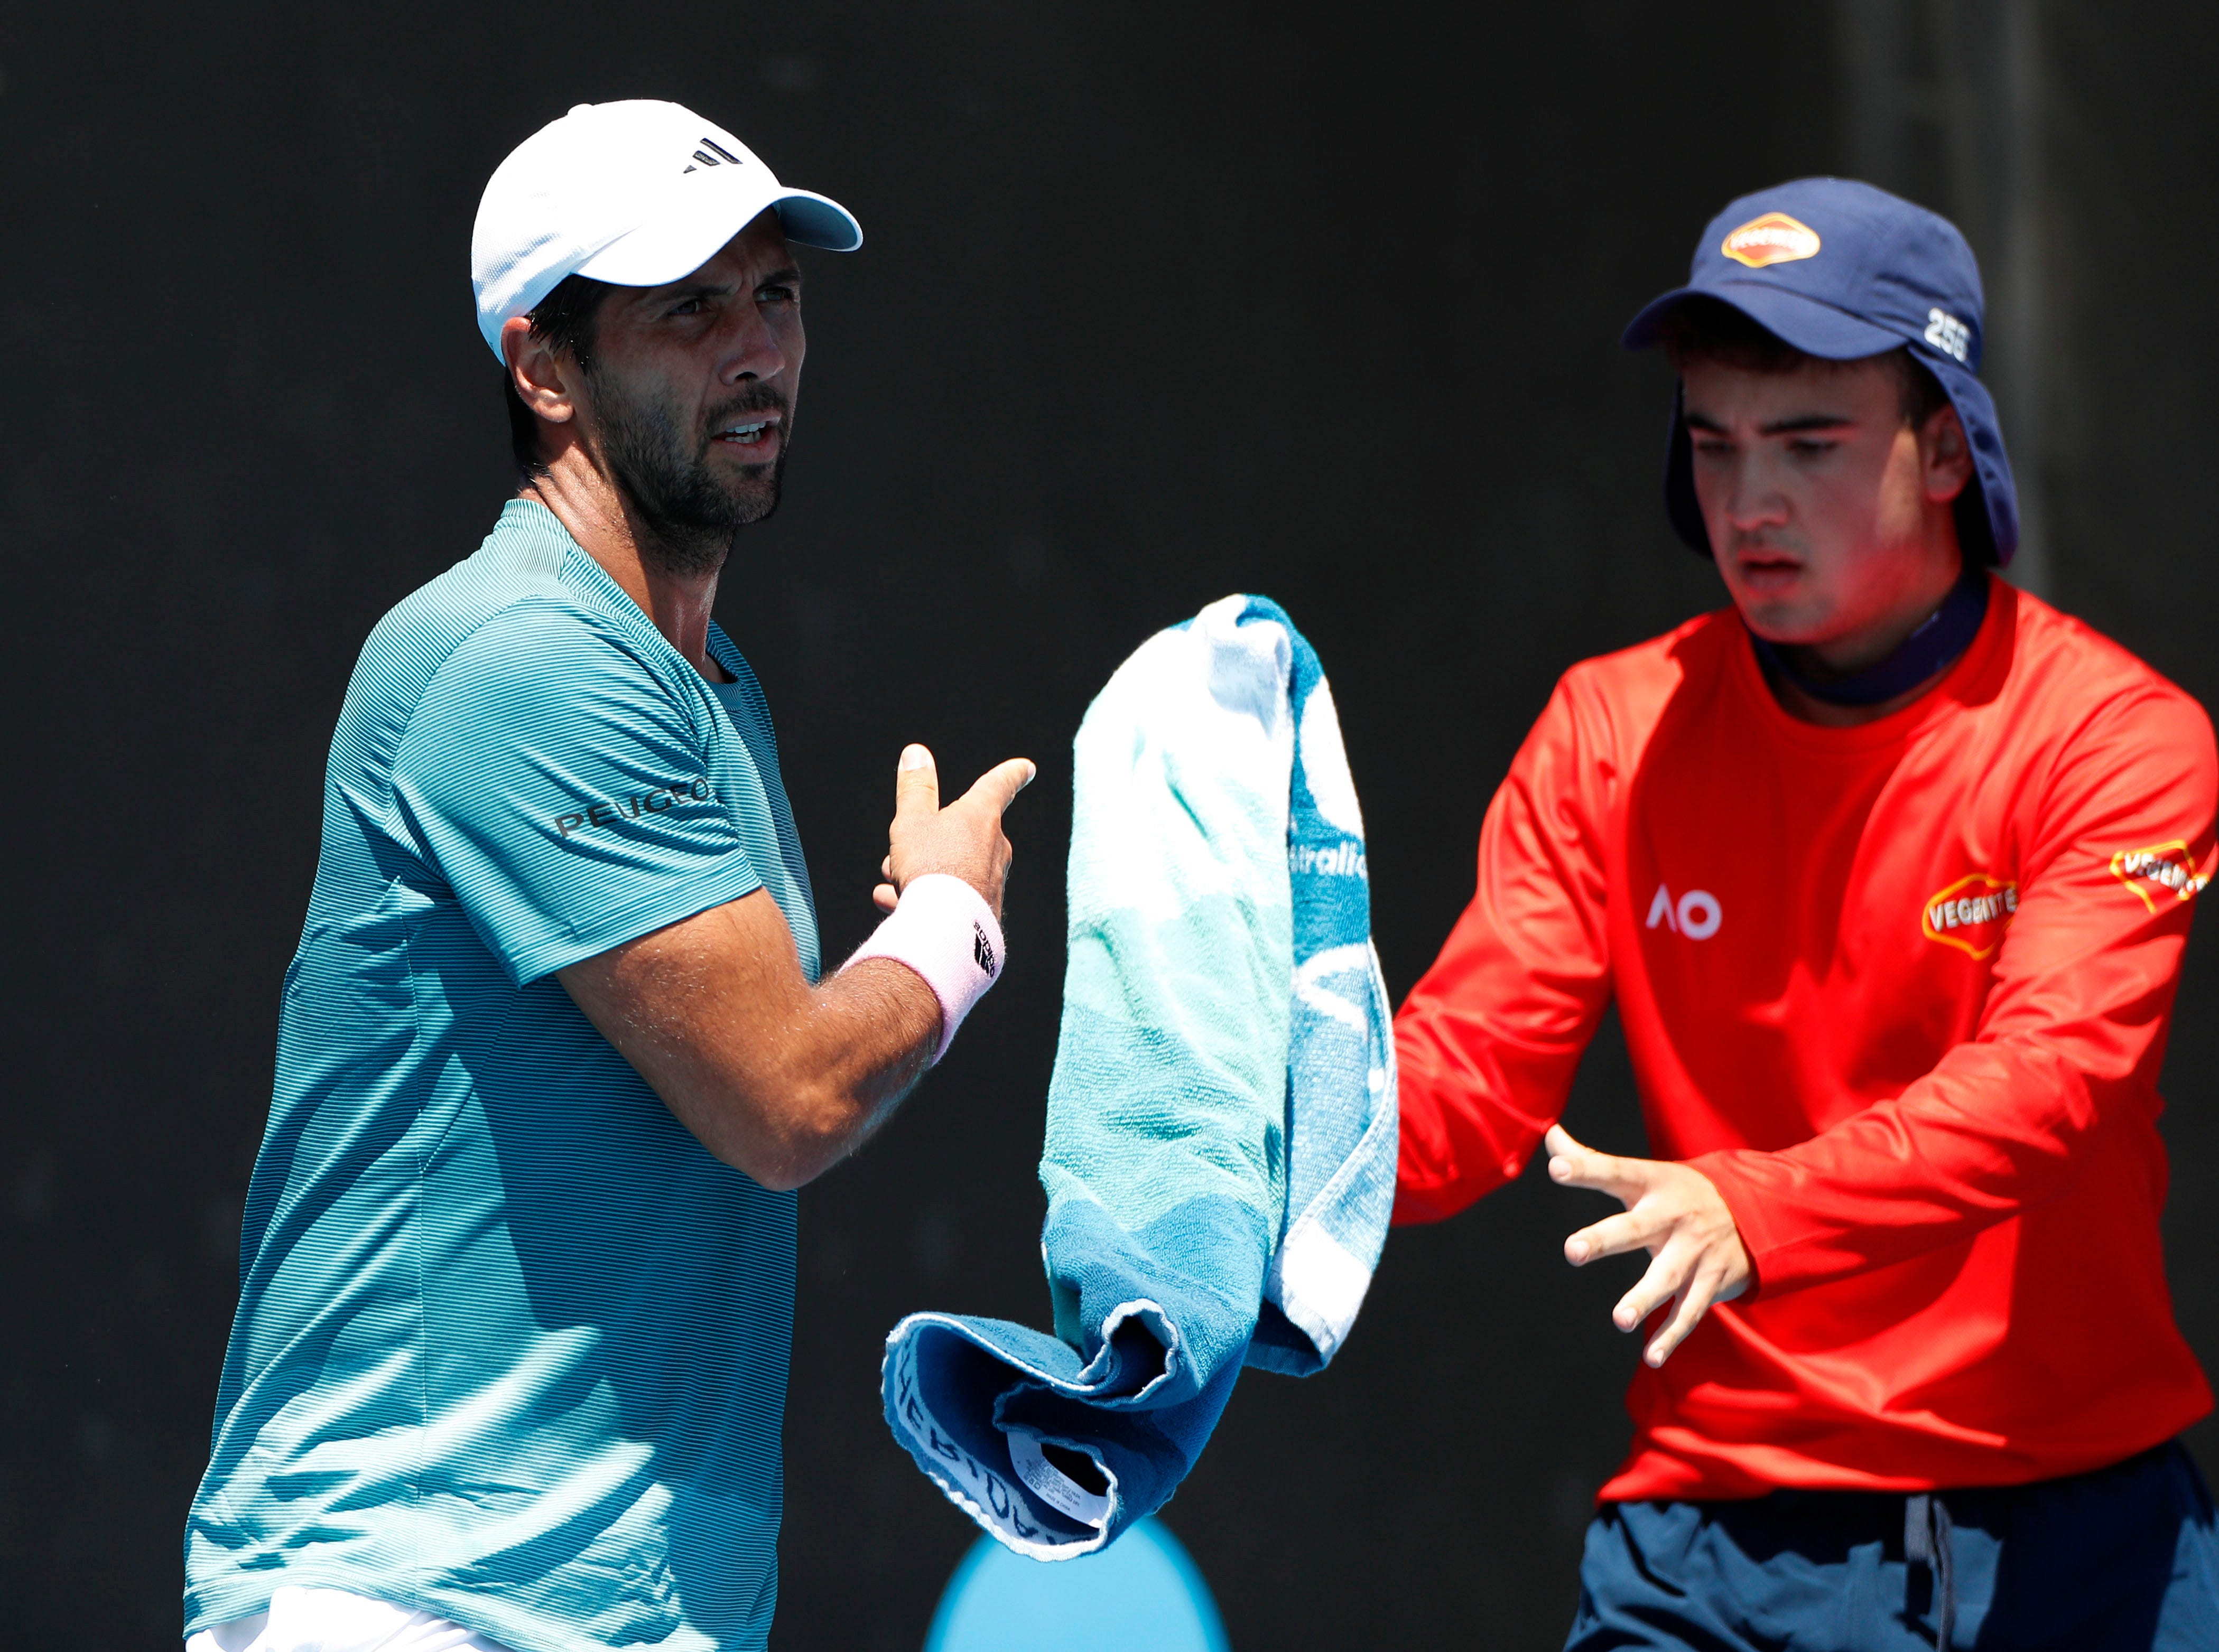 Spain's Fernando Verdasco, the No. 26 seed, throws a towel to a ball boy during his first-round victory over Miomir Kecmanovic of Serbia.